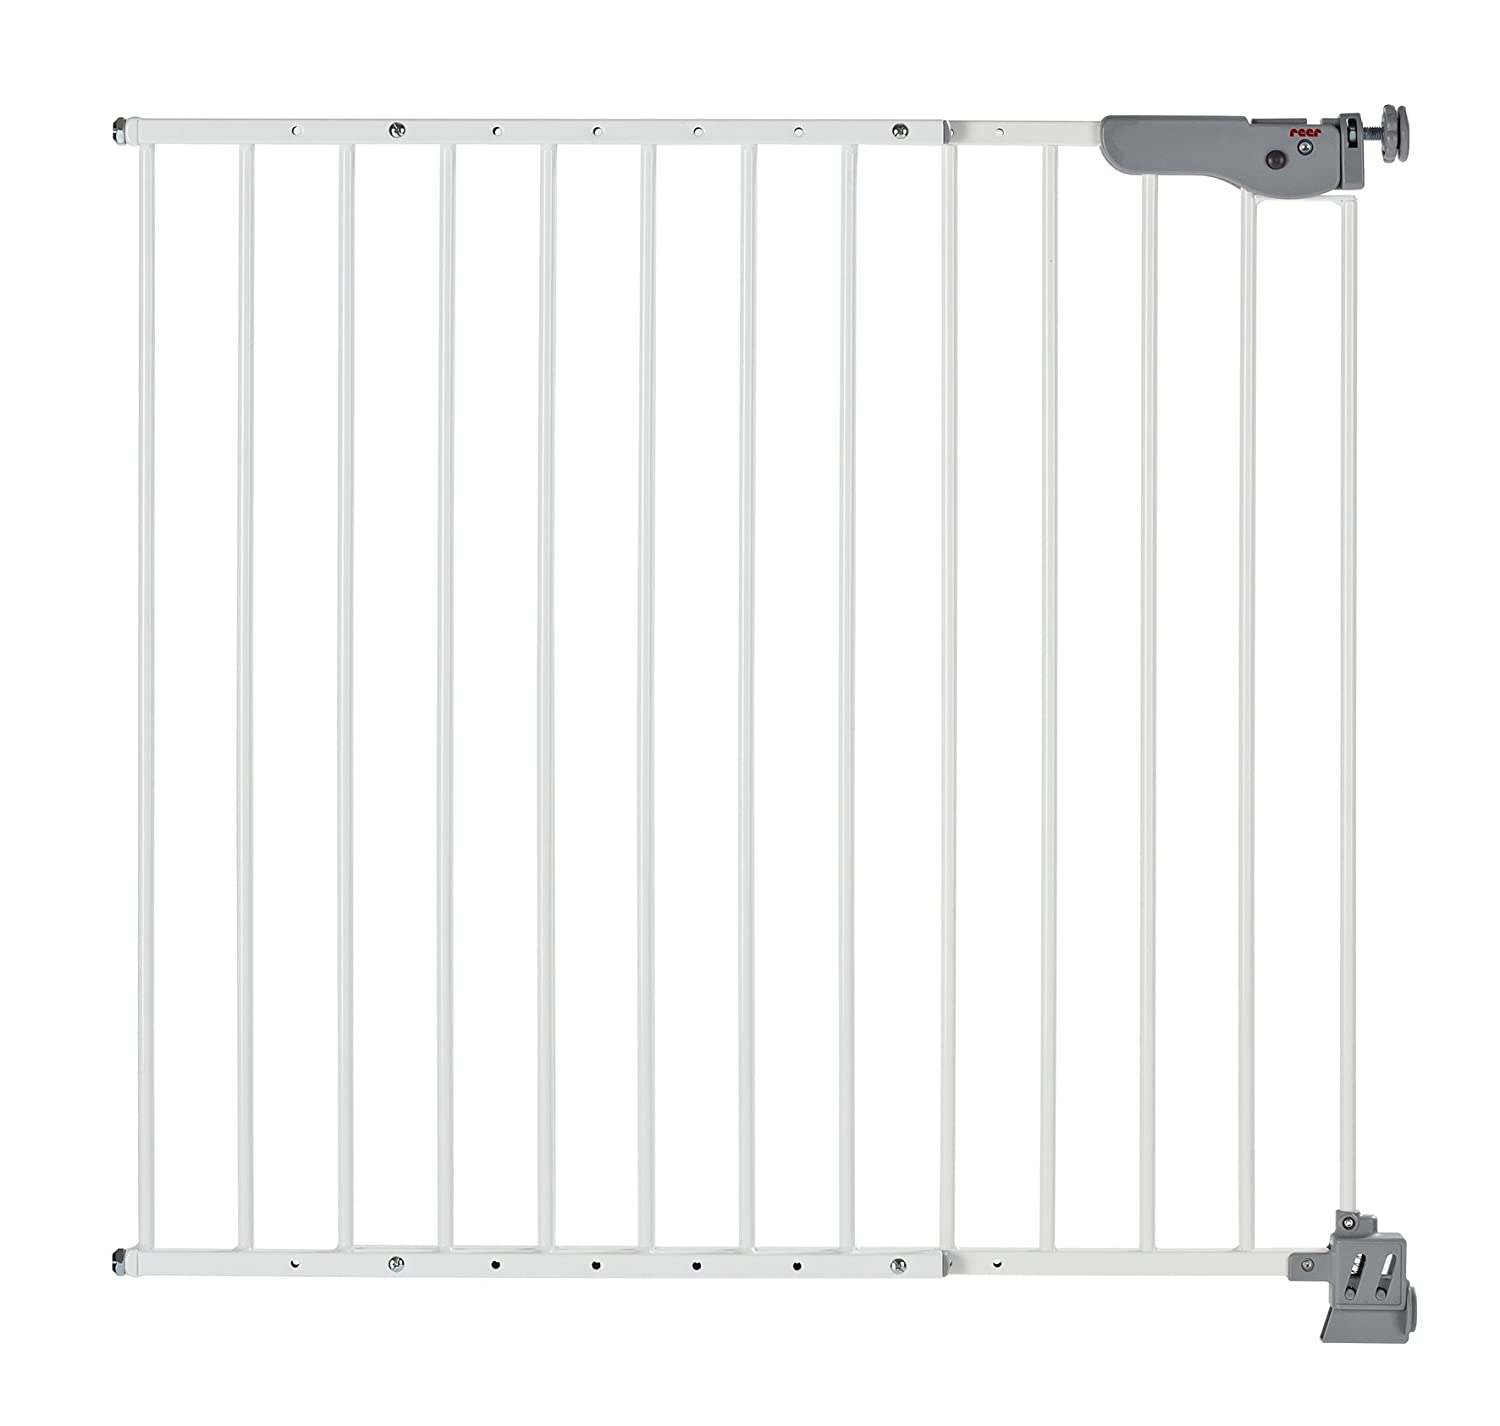 Reer 46120  t-gate Tü rschutzgitter Dual Kit, Active-Lock, Metall Container